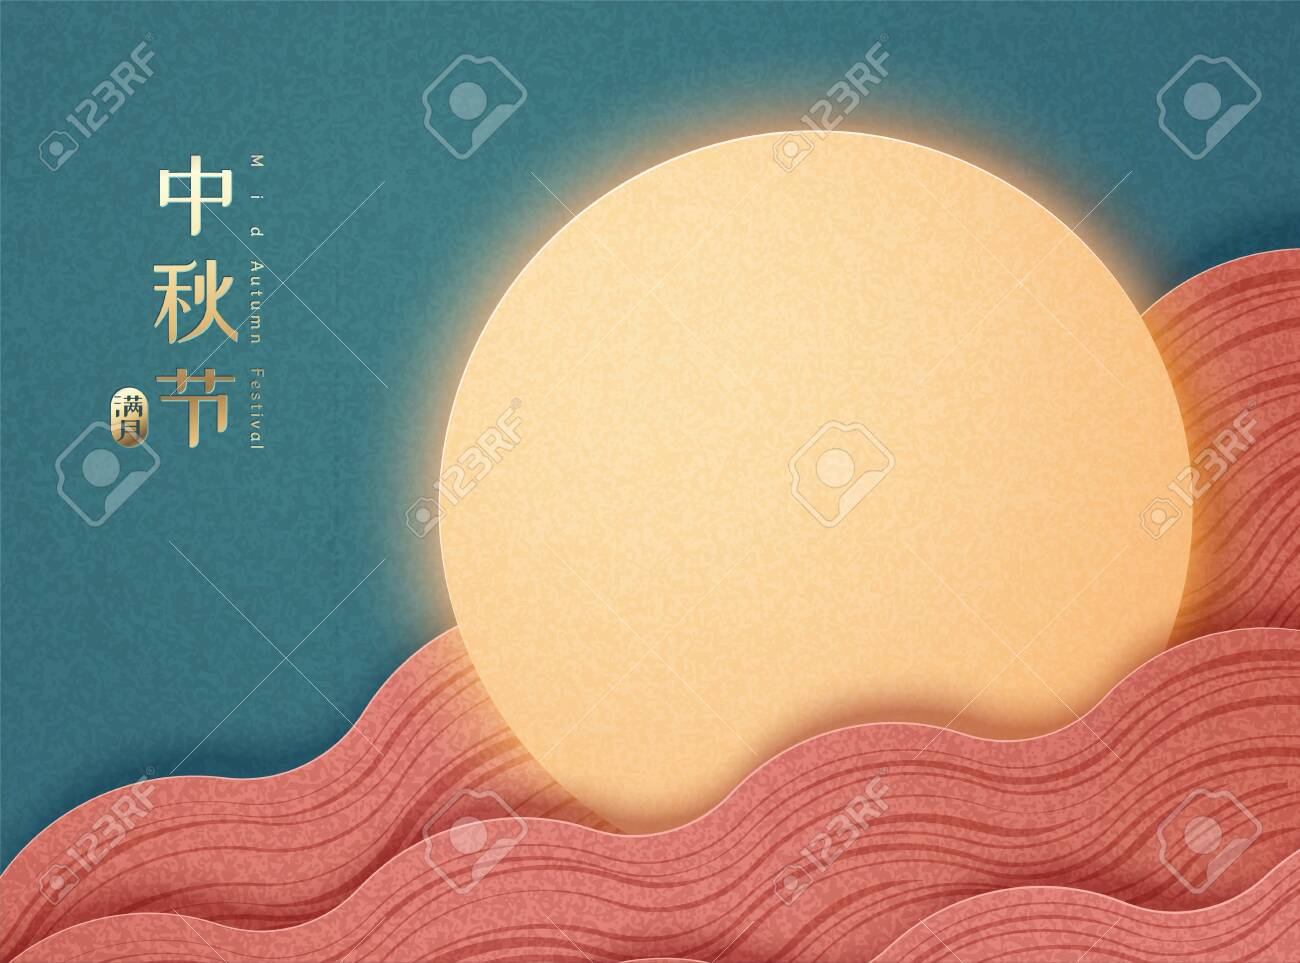 Elegant mid autumn festival and the full moon written in Chinese words, attractive moon and watermelon red cloud - 129005353